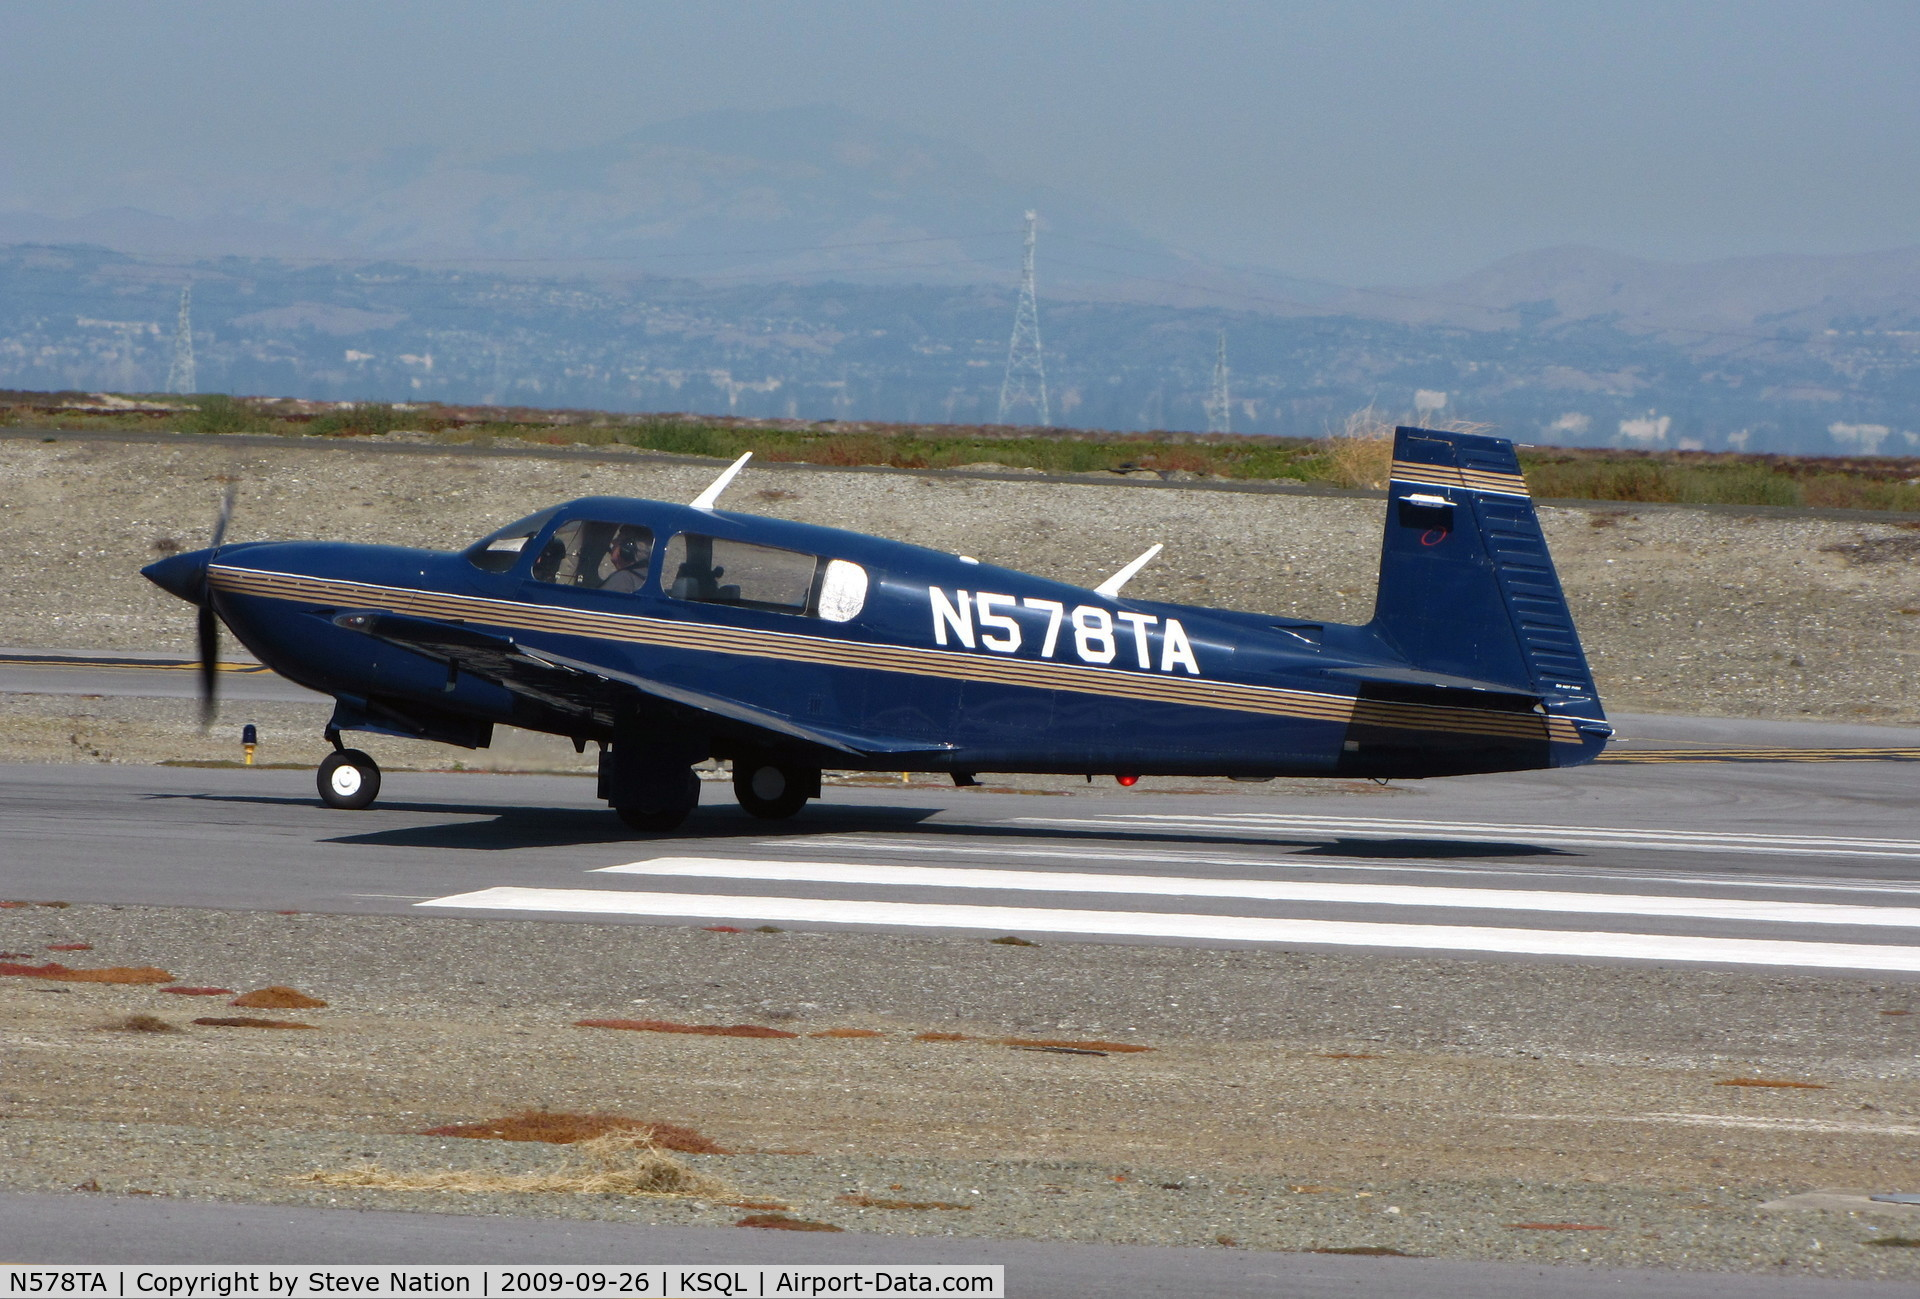 N578TA, Mooney M20R Ovation C/N 29-0153, Locally-based Mooney M20R on take-off